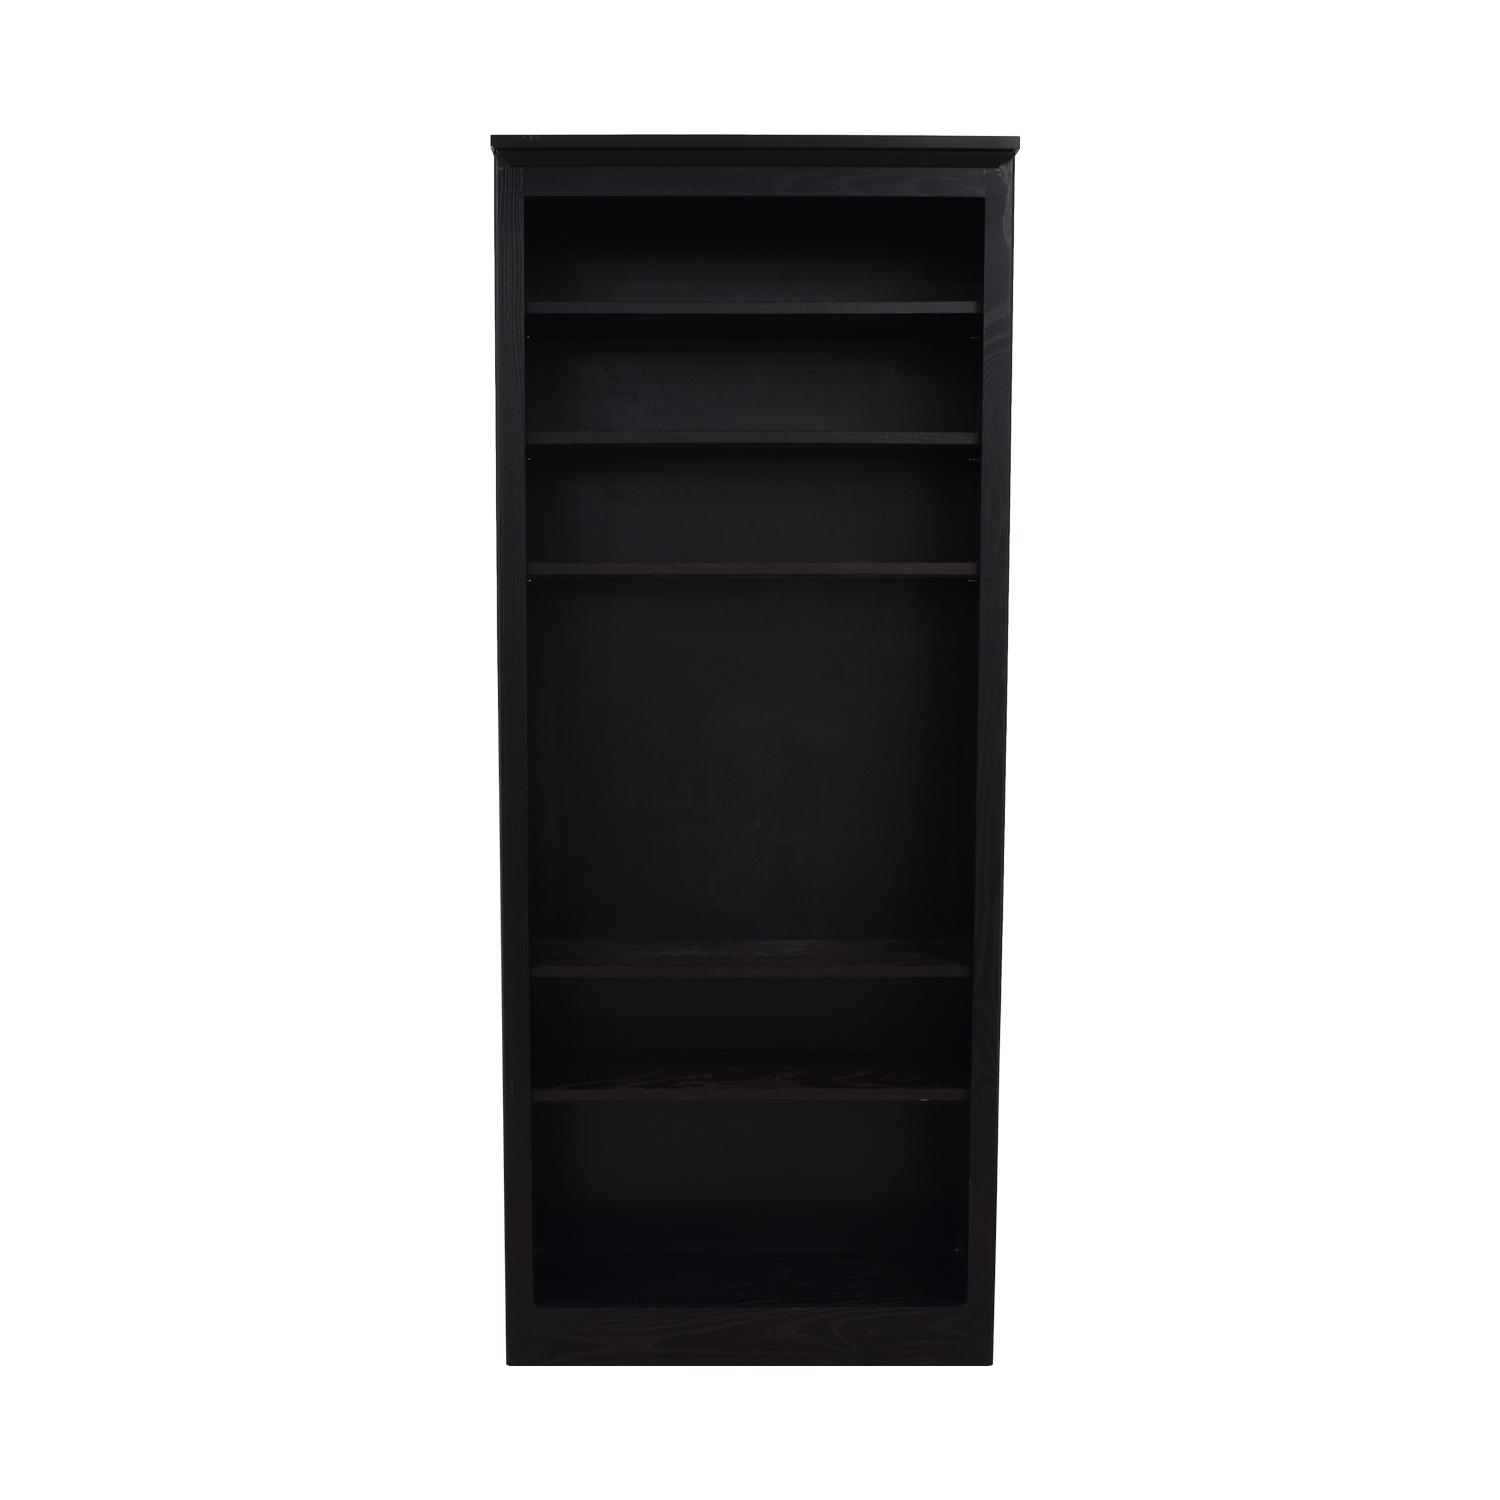 Crate & Barrel Crate & Barrel Black Bookcase second hand